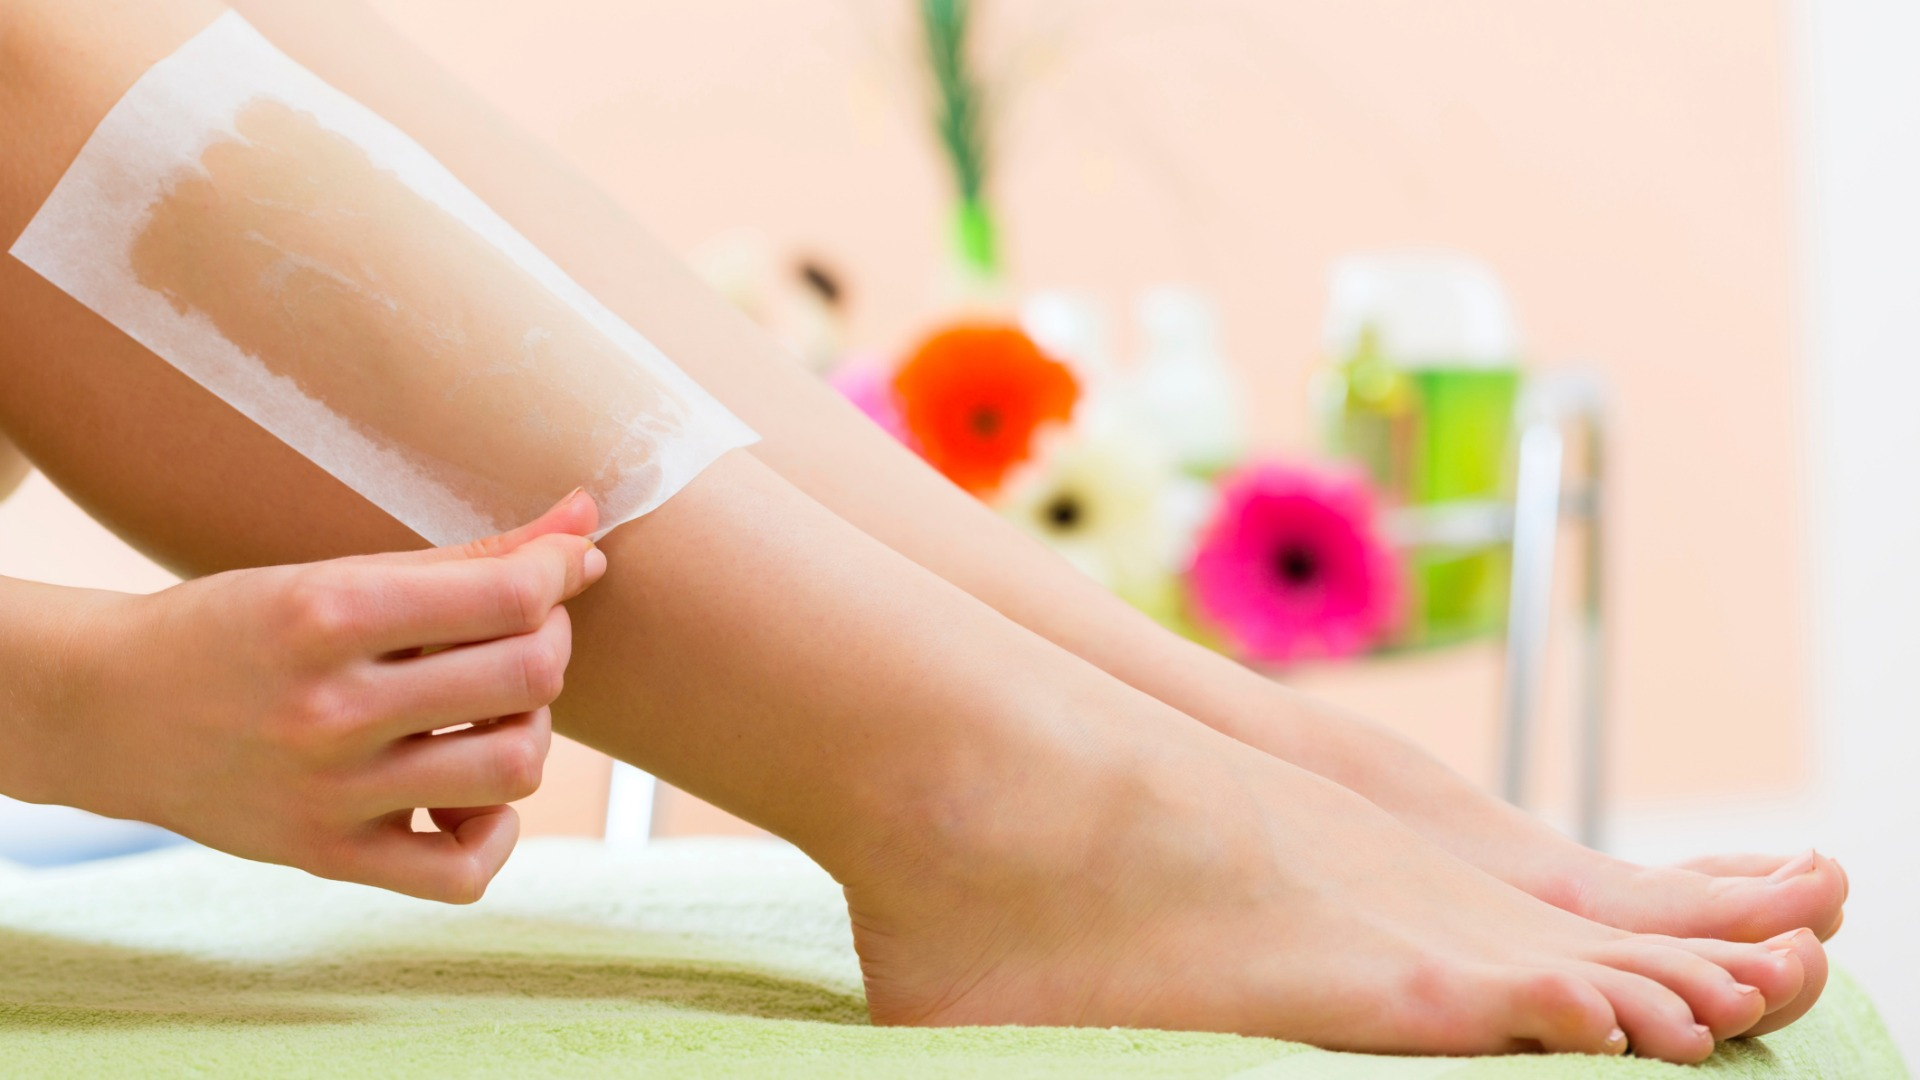 DIY Waxing: Get It Right the First Time